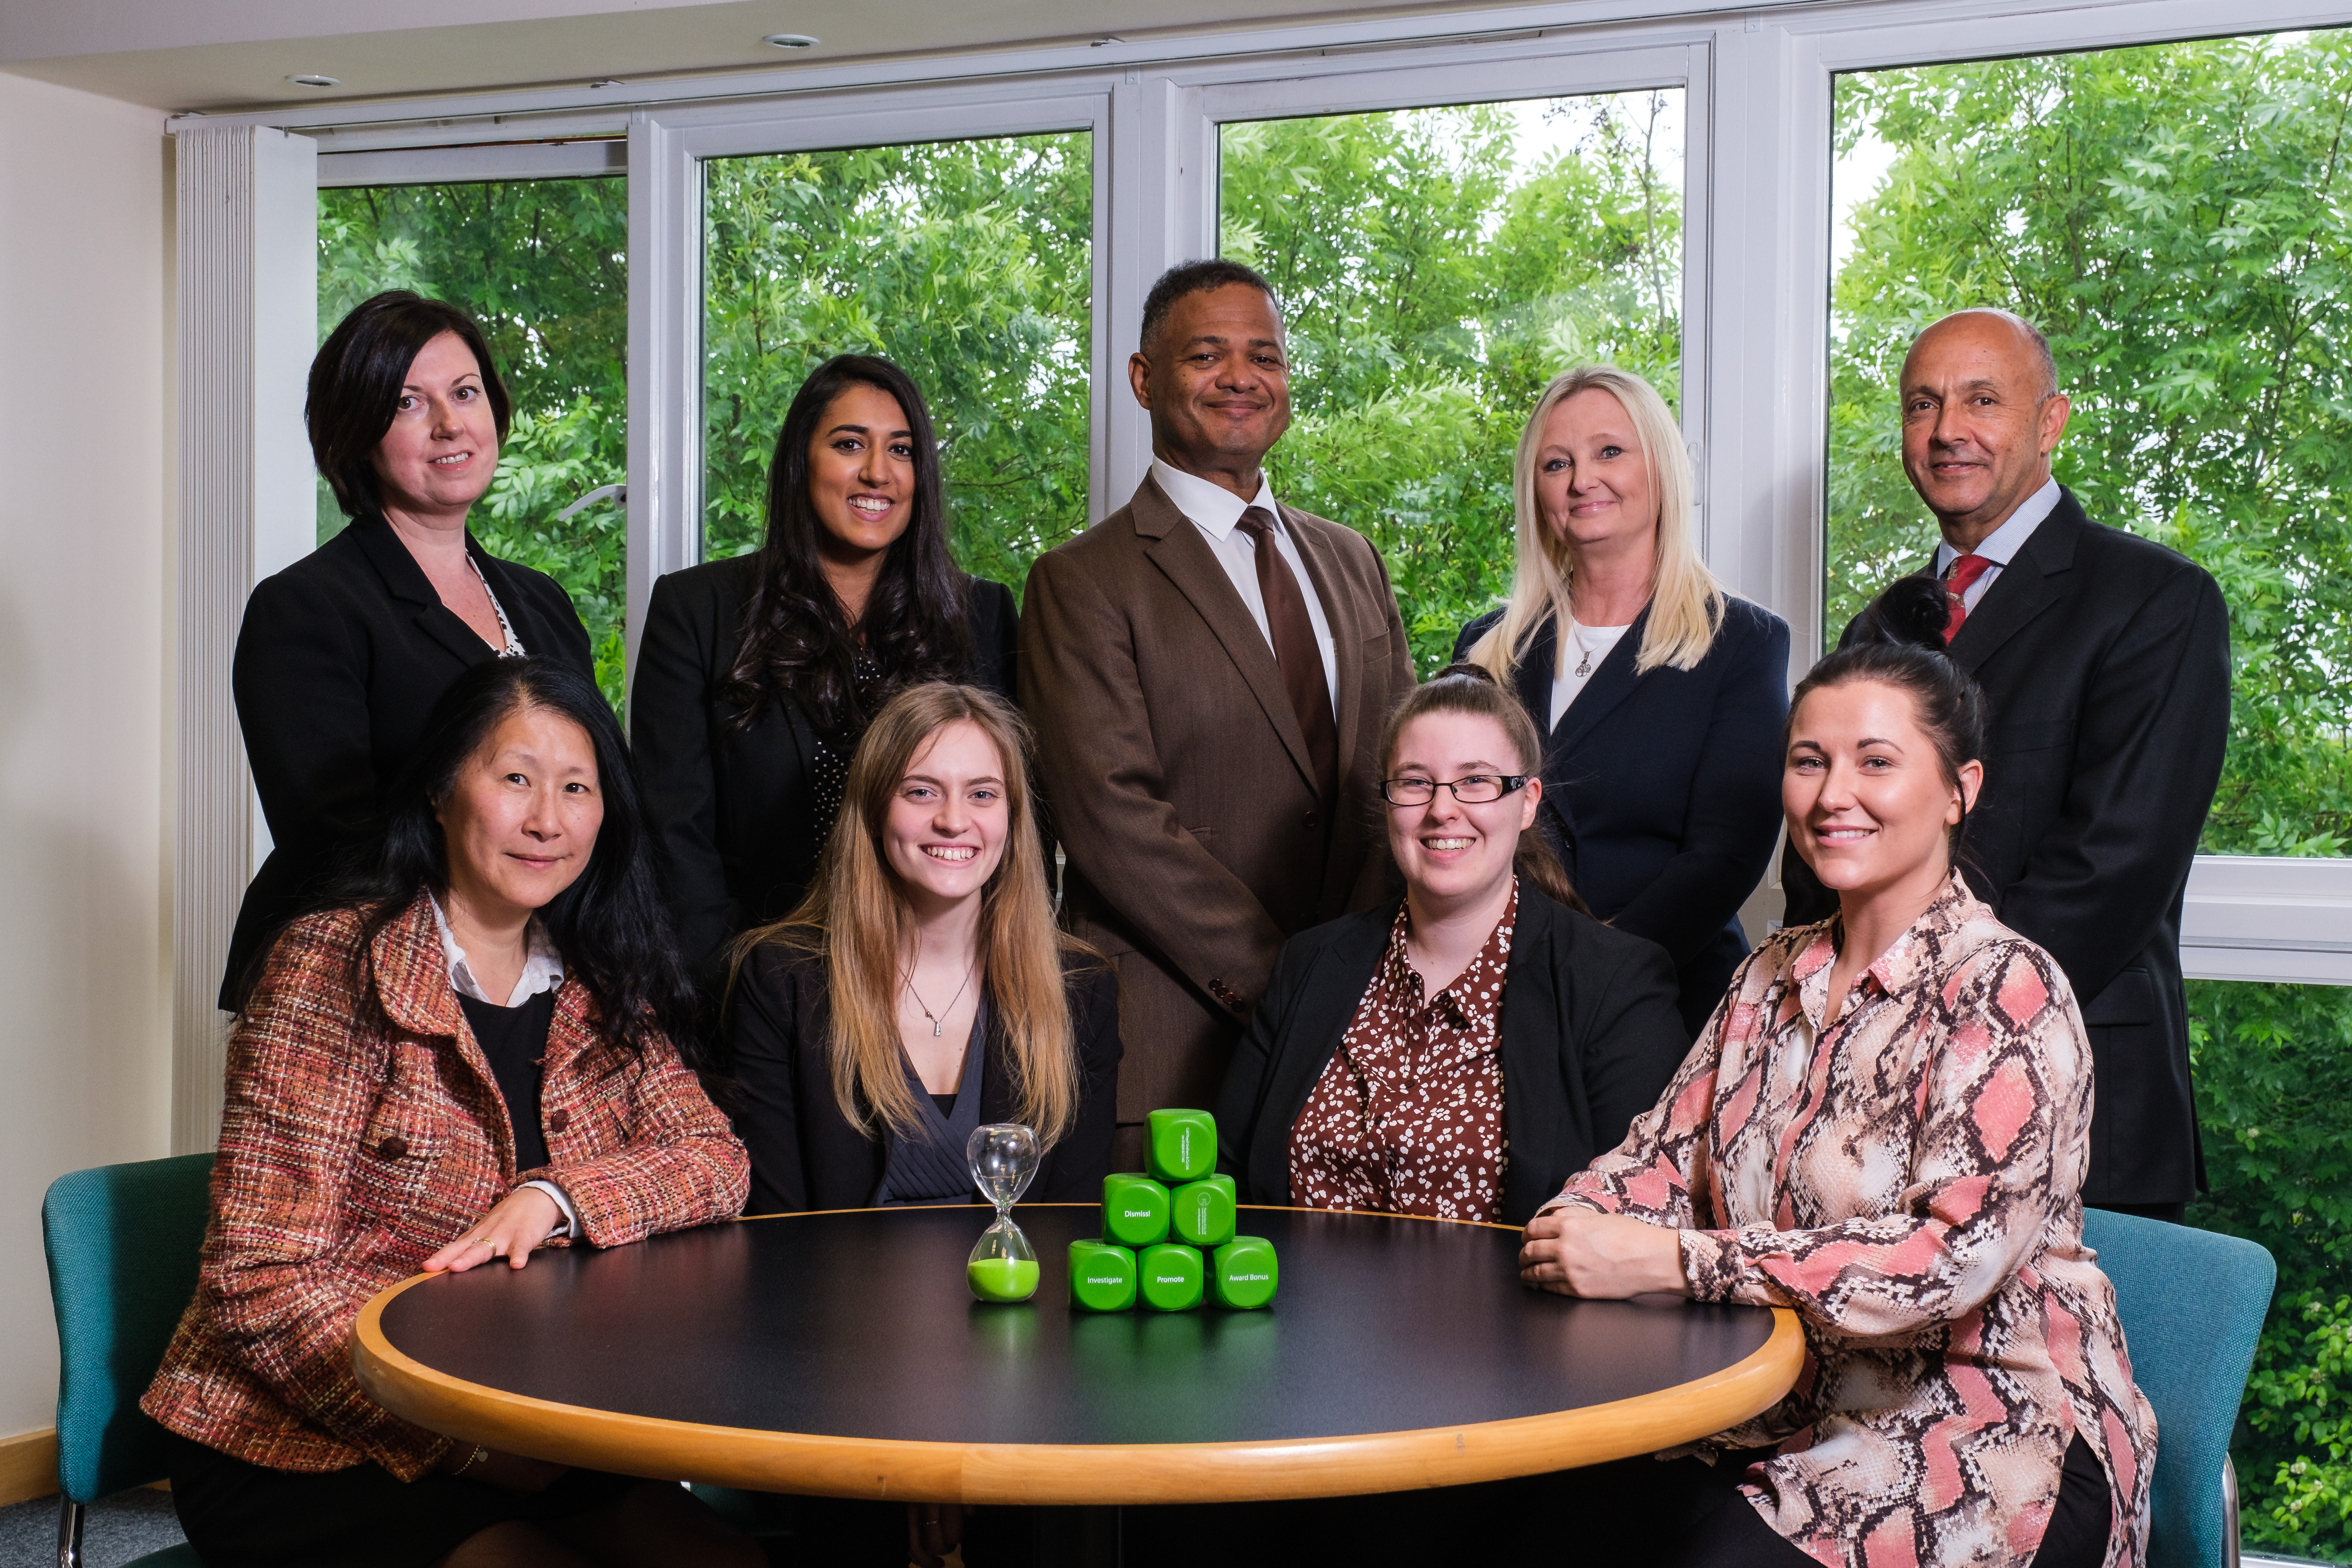 A picture of the team at FG Solicitors